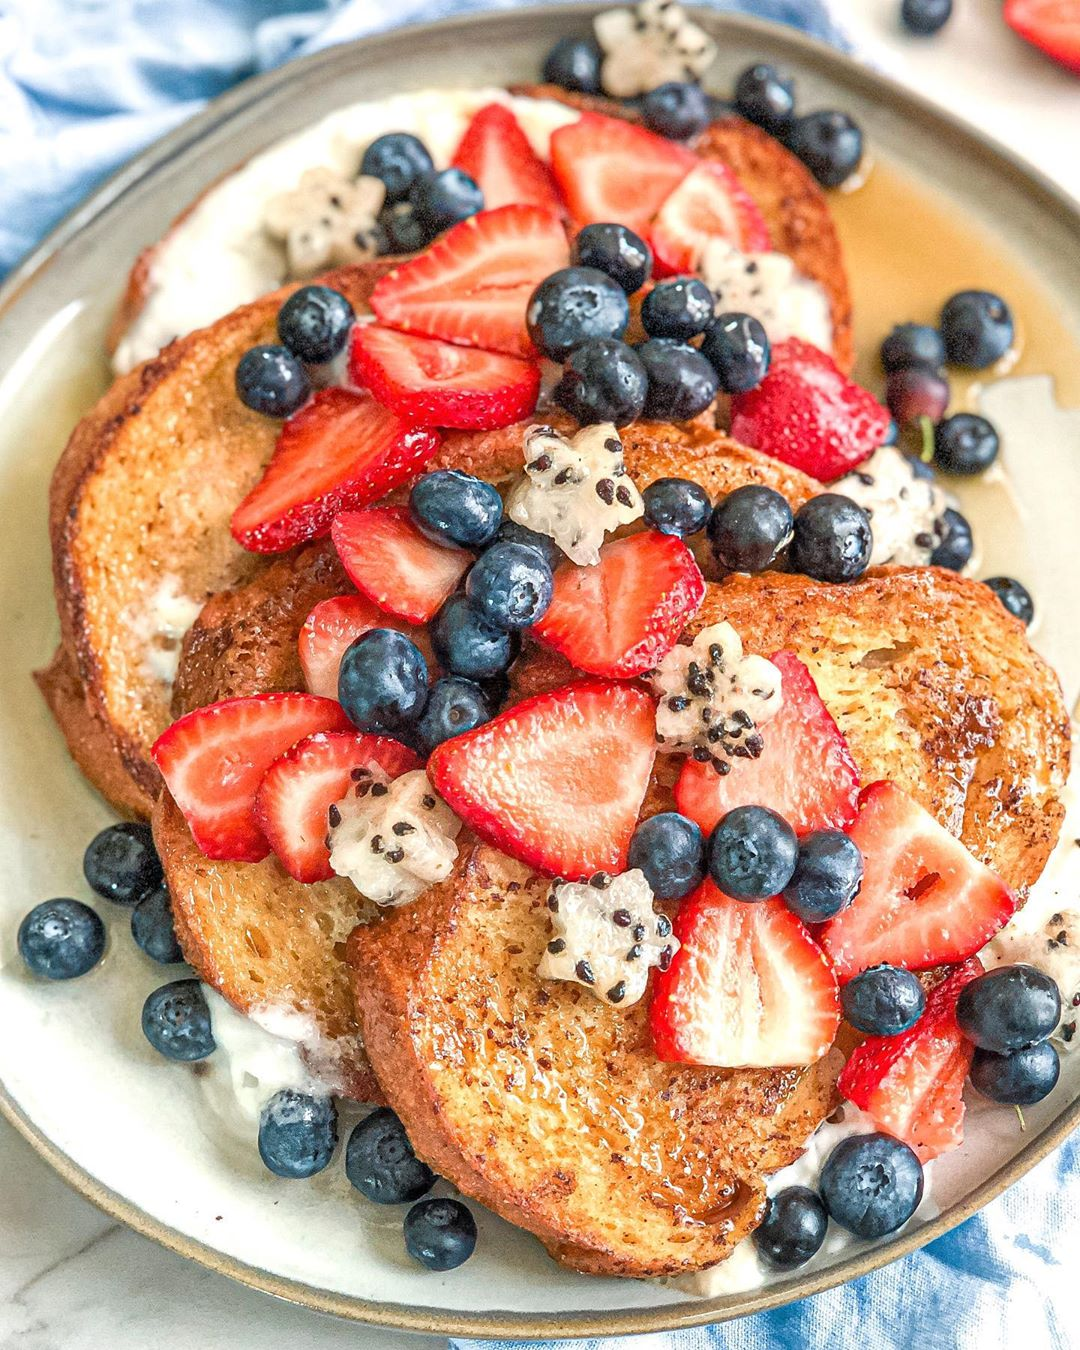 red white and blue vegan french toast for your july 4th week multip img 0 21cf606b